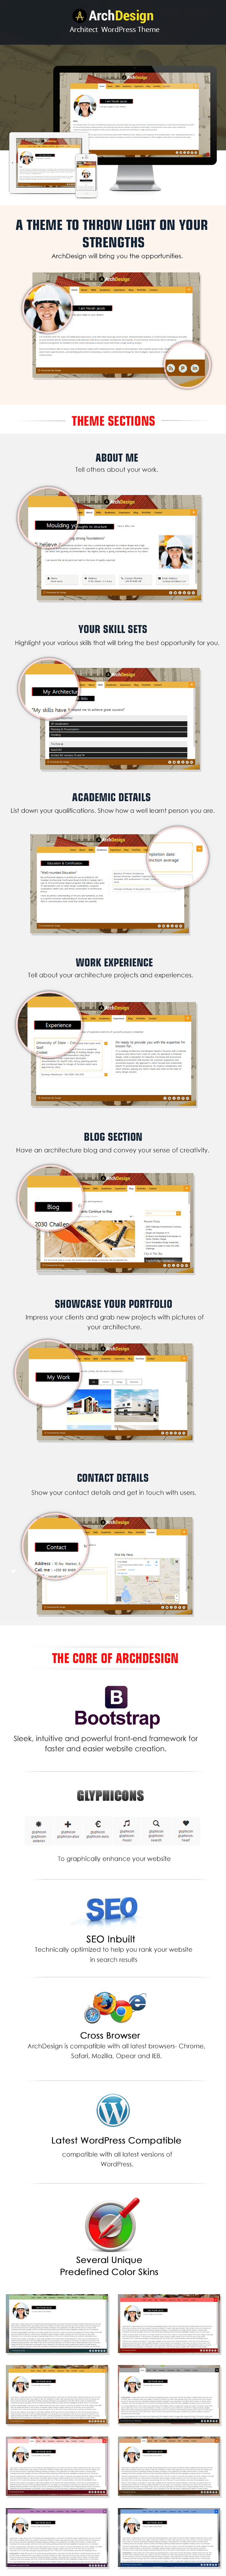 archdesign - achitect wordpress theme